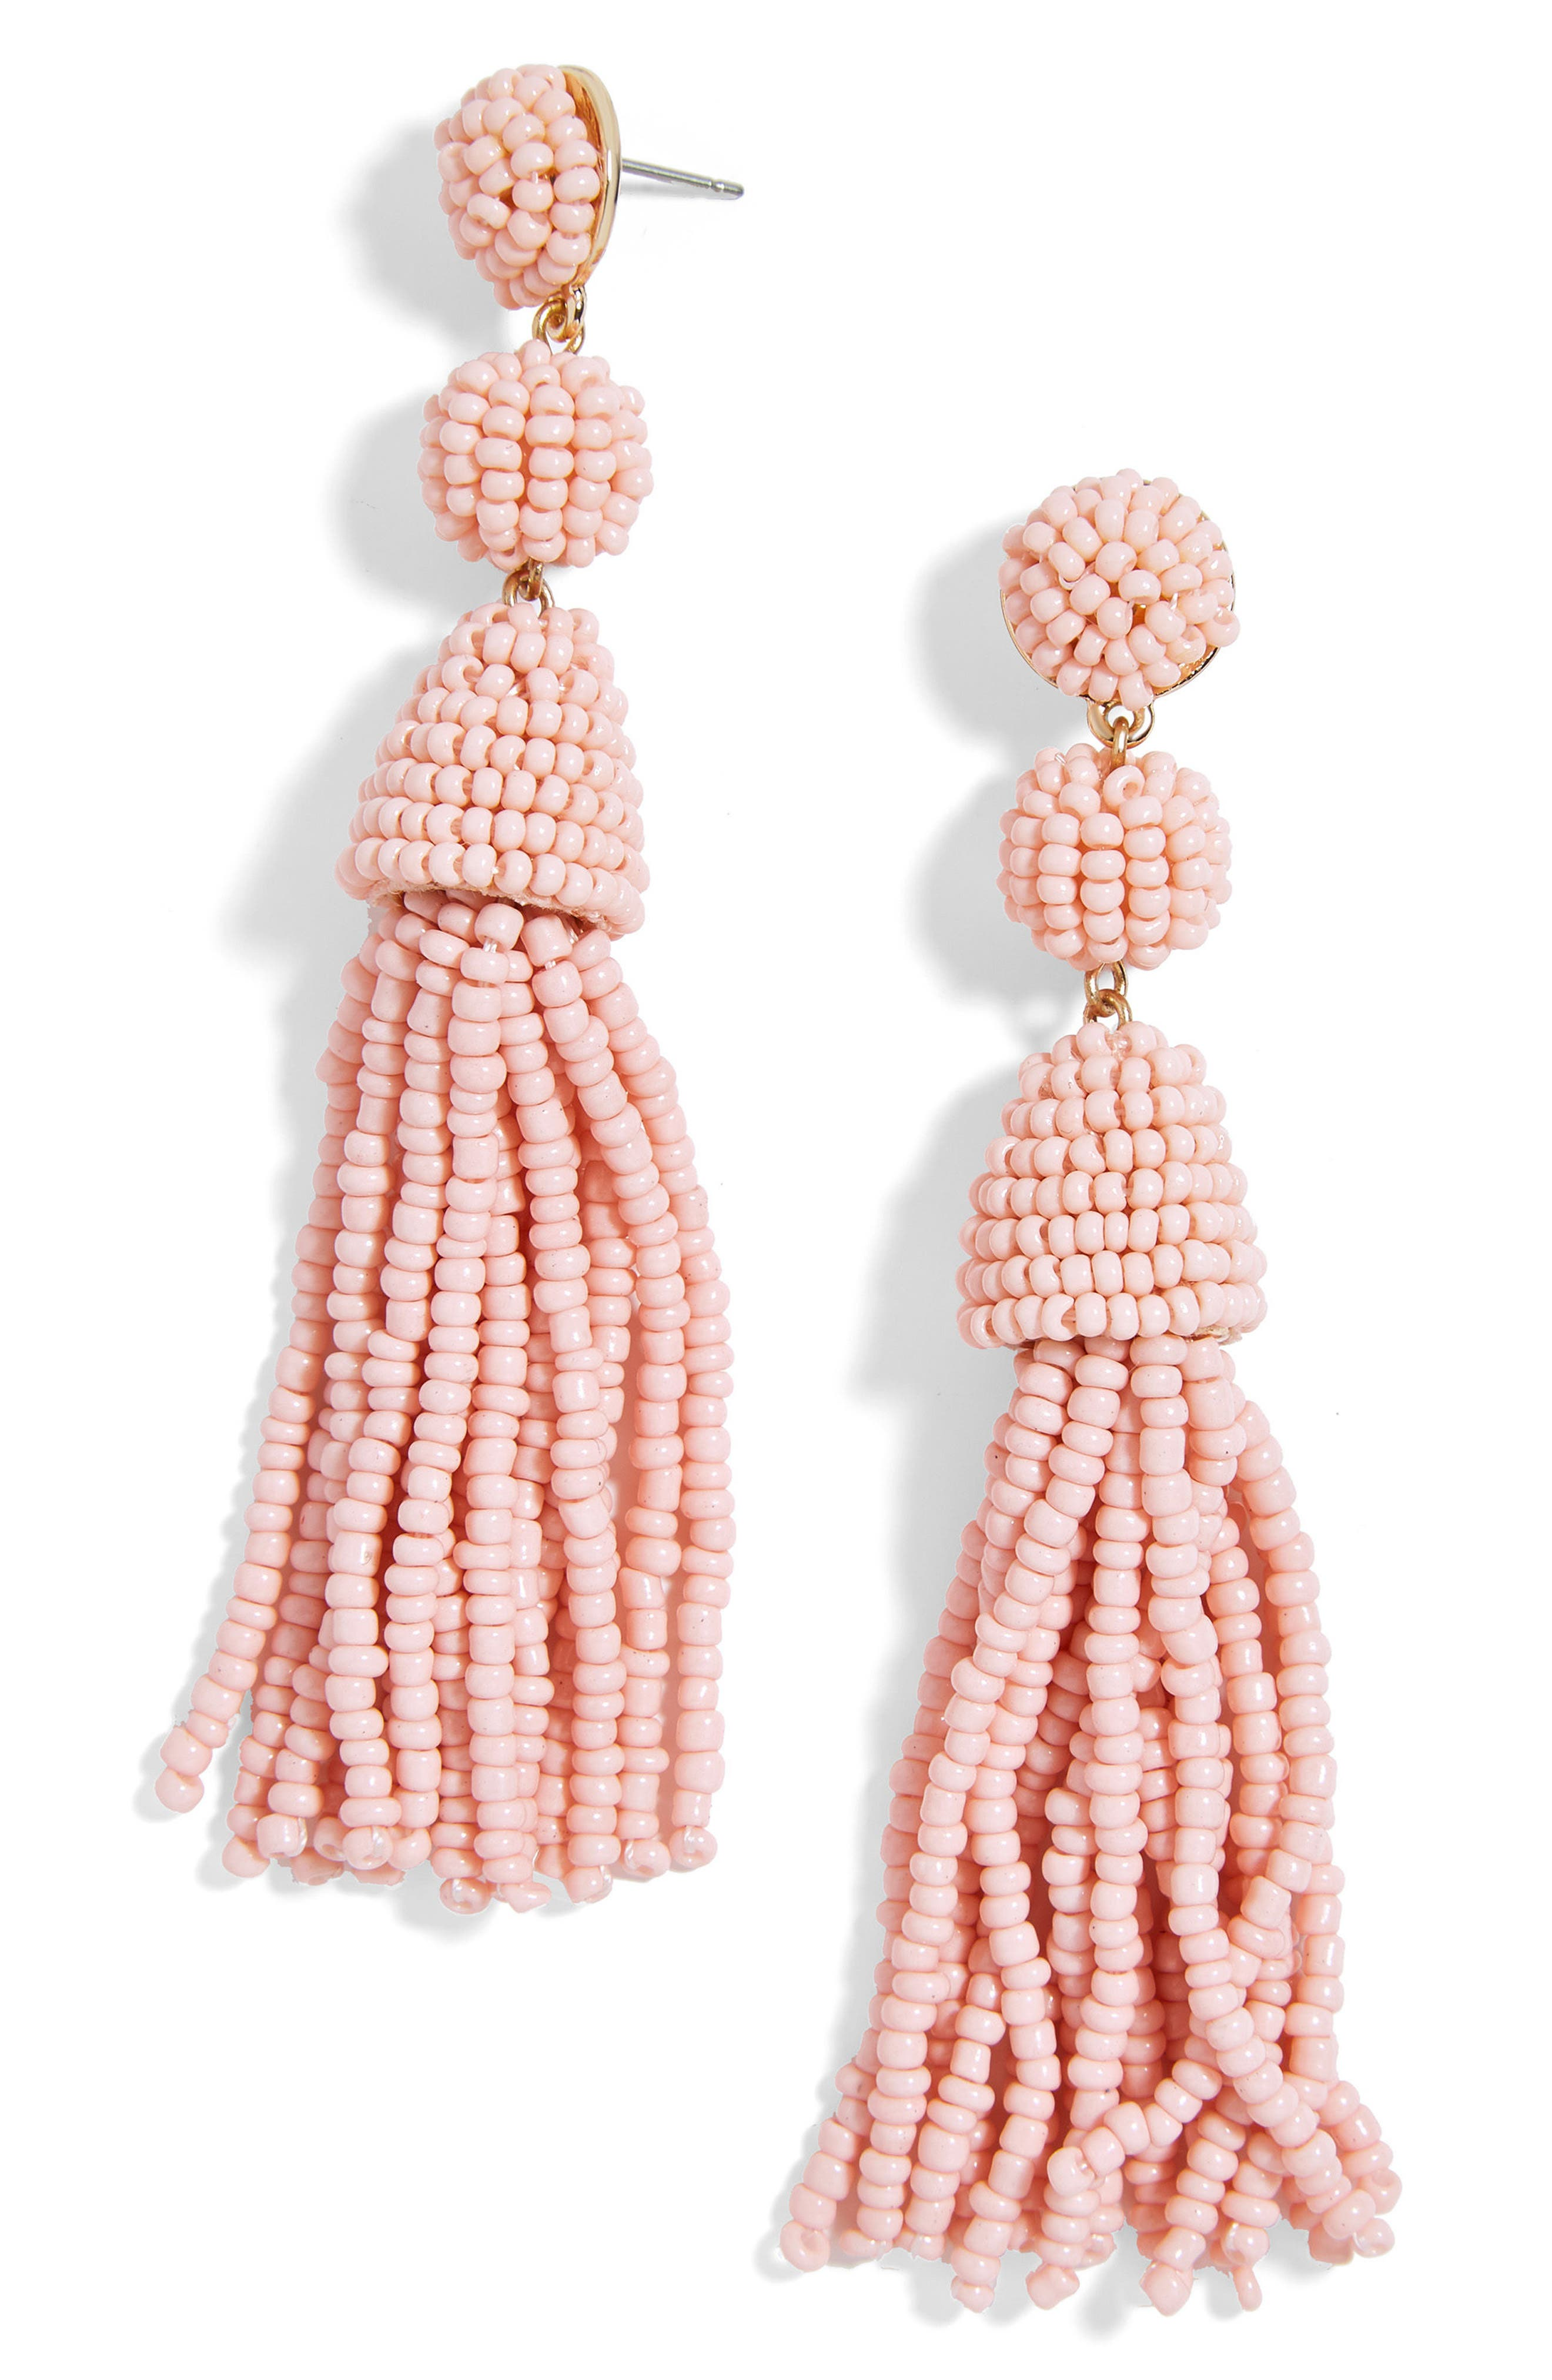 Granita Beaded Tassel Earrings,                             Main thumbnail 1, color,                             BLUSH